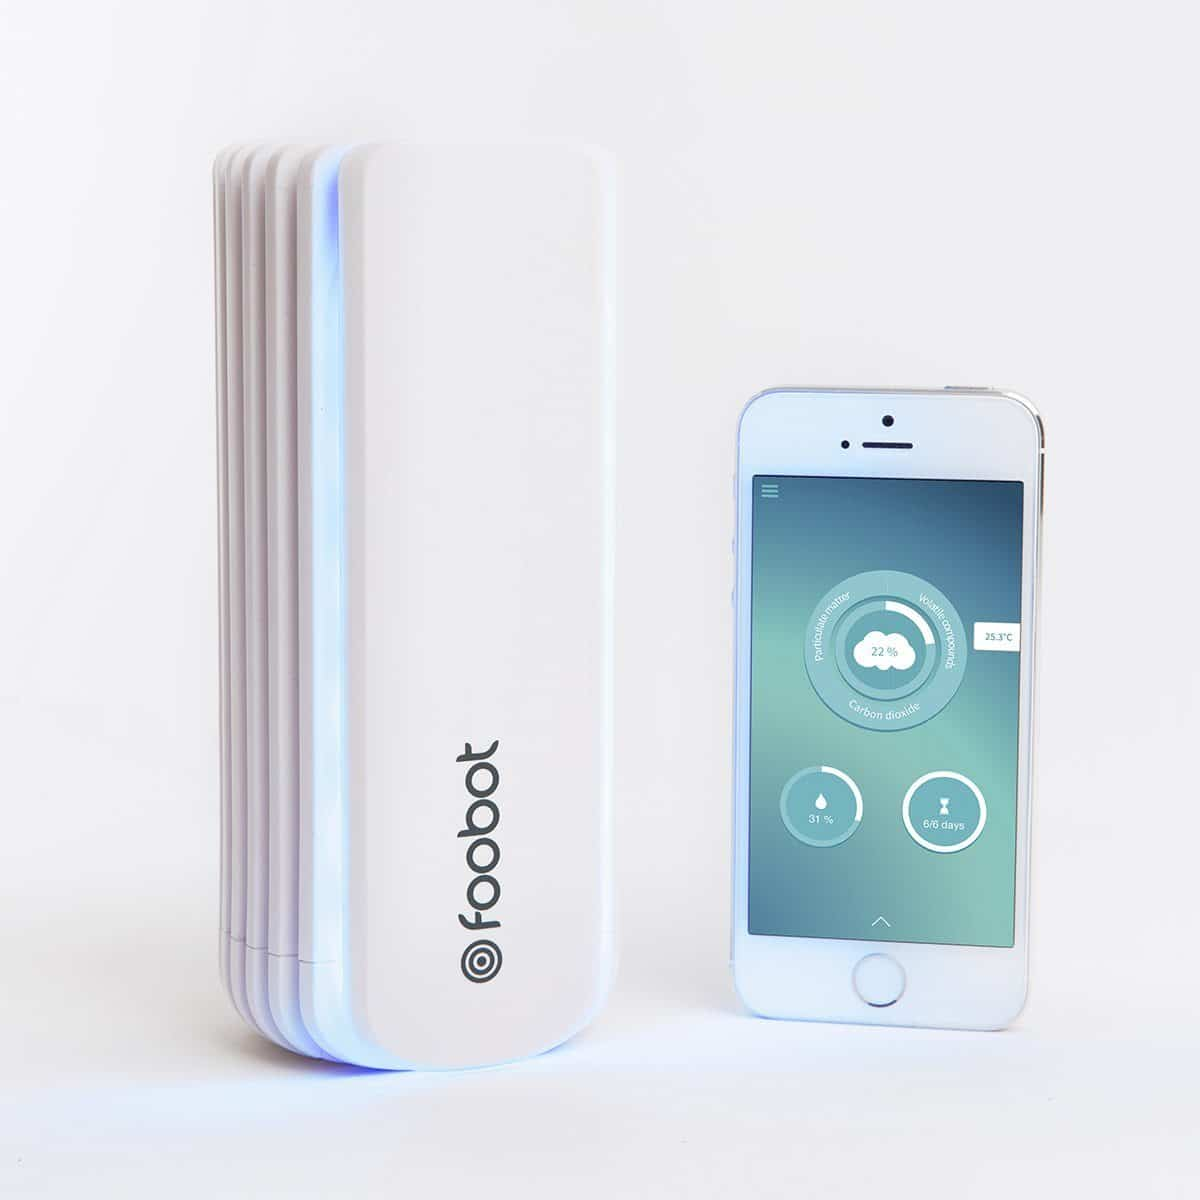 improve the air in your home with these smart gadgets 4 - Improve the air in your home with one of these smart gadgets